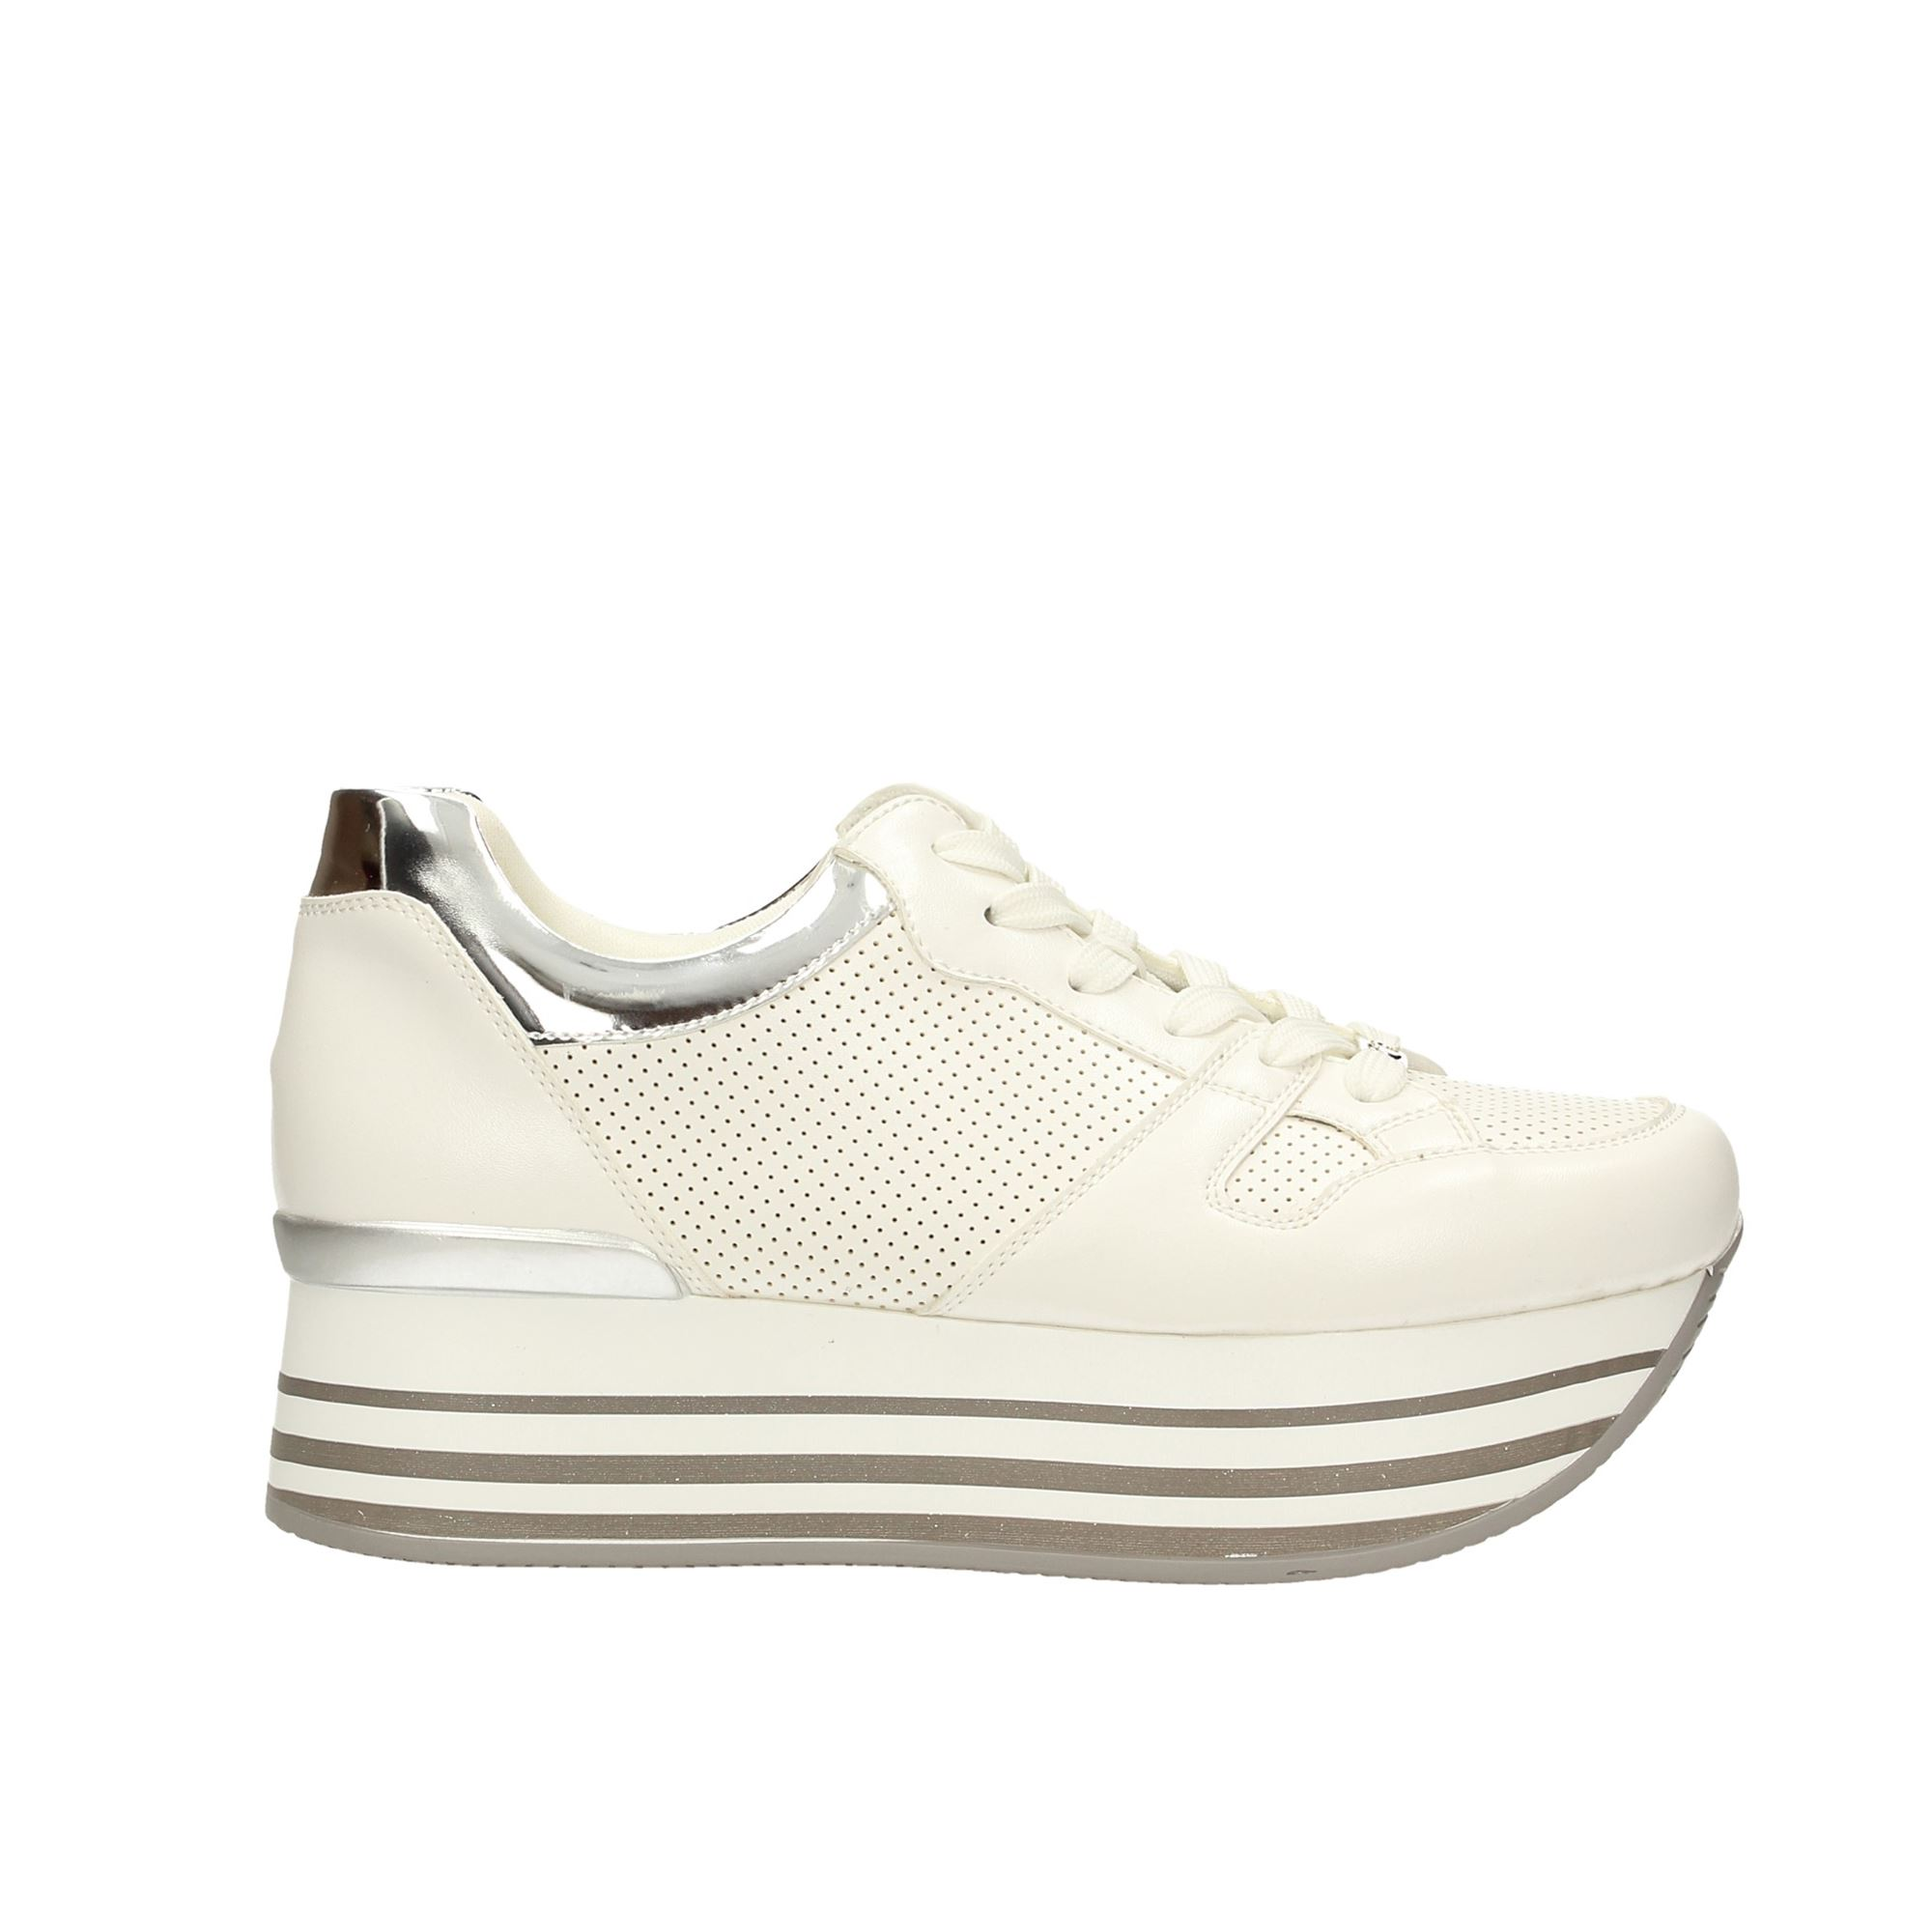 Tata Italia Shoes Woman Sneakers White T18352